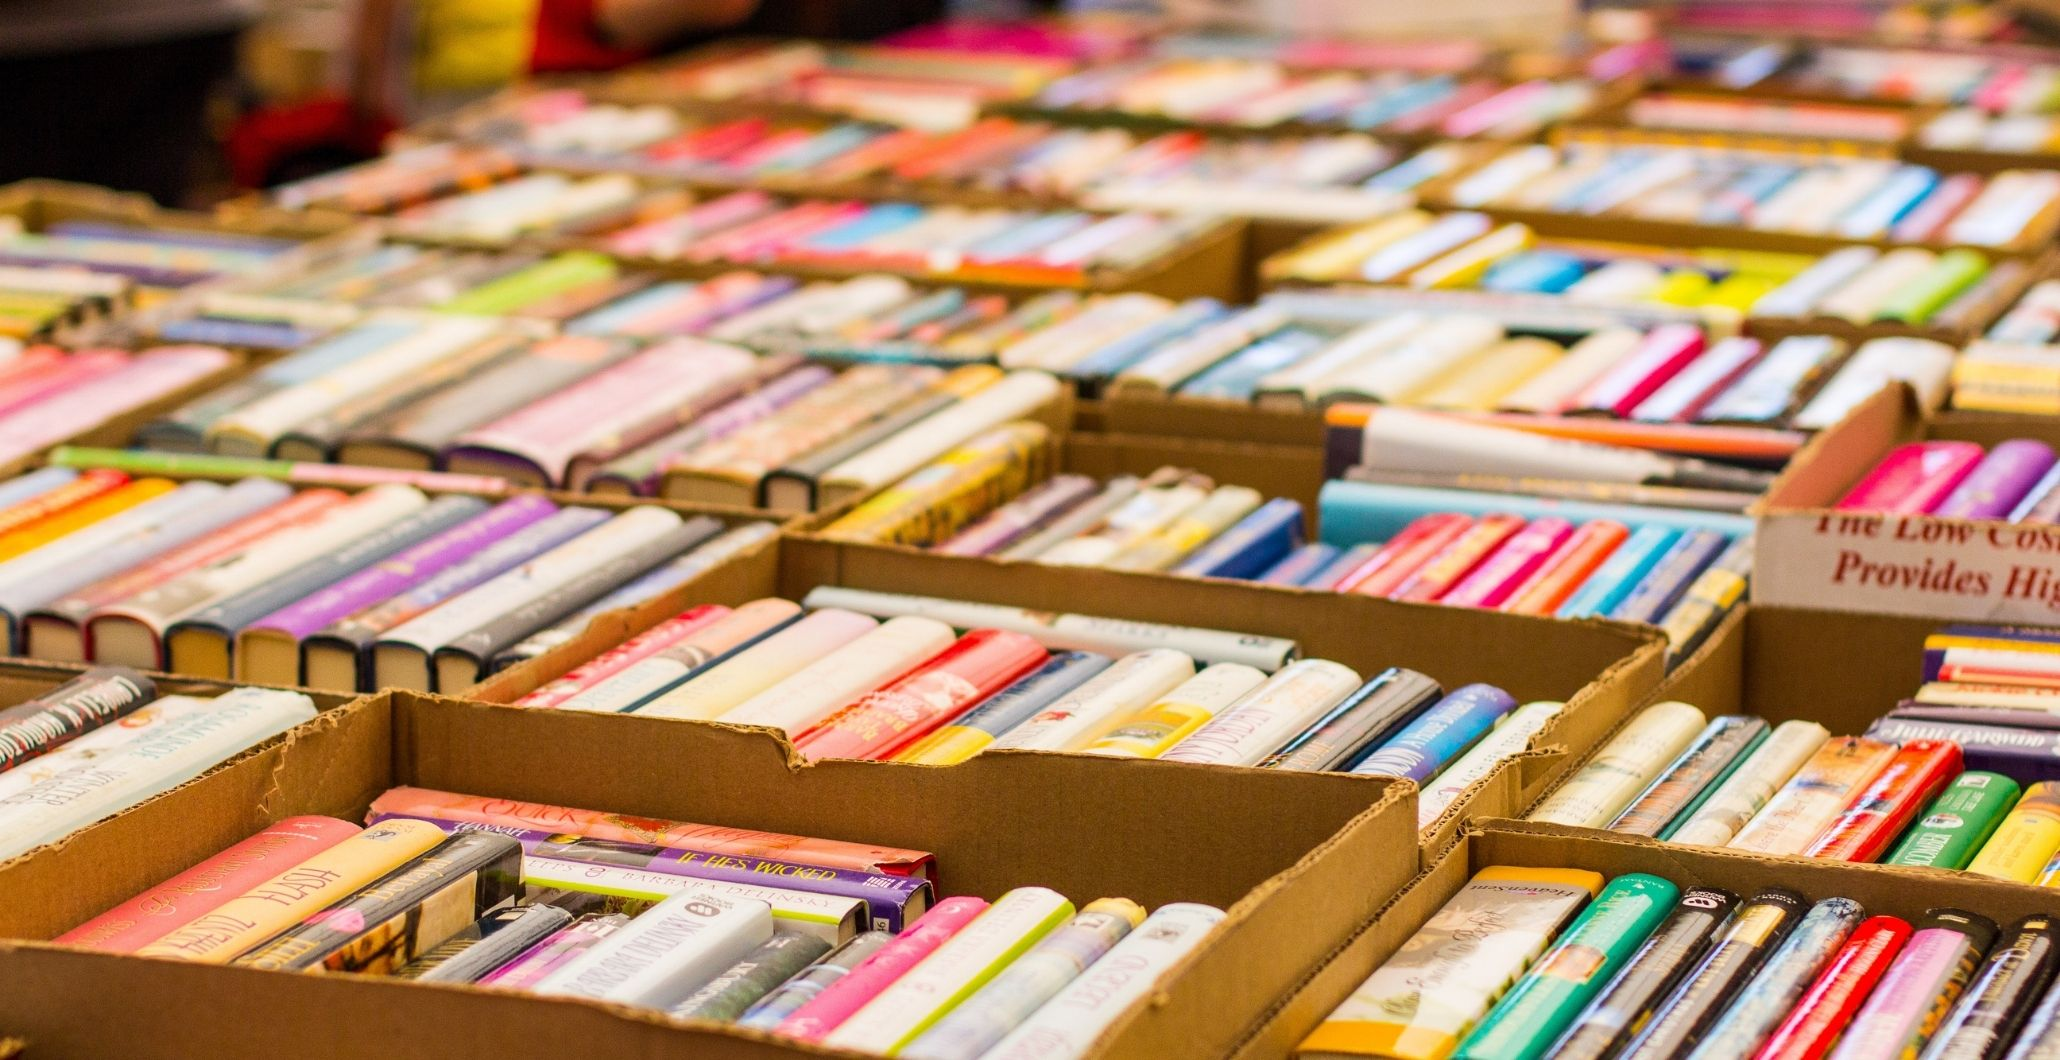 Friends Book Sale Re-Opening